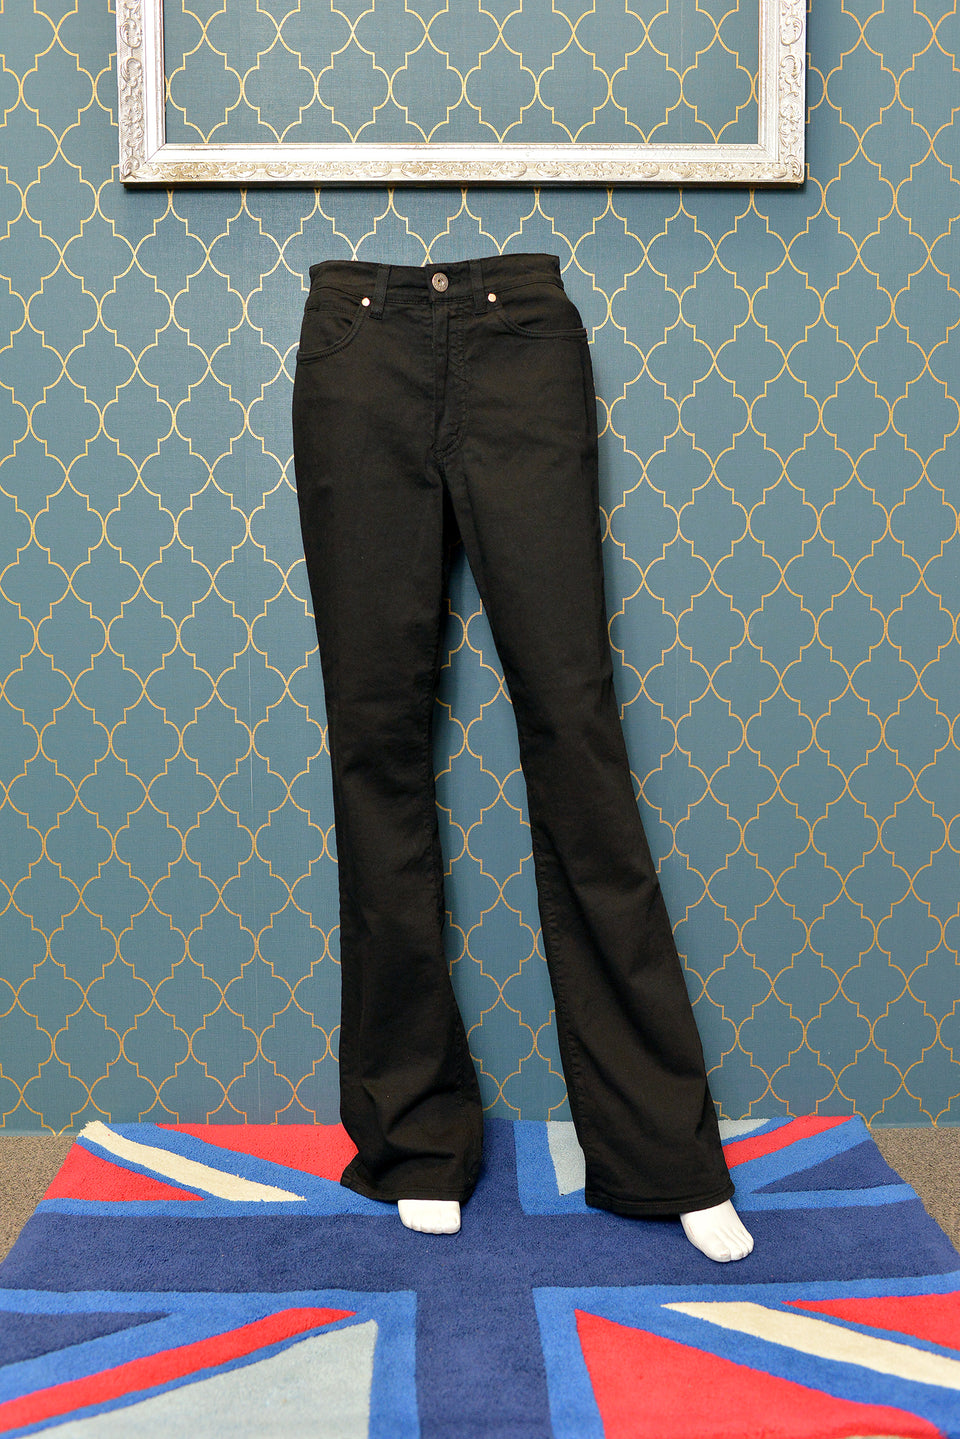 JQ Jonny-Q Women's Black Stretch Boot Cut Leg Jeans. Size 14 Long. NEW with tags.